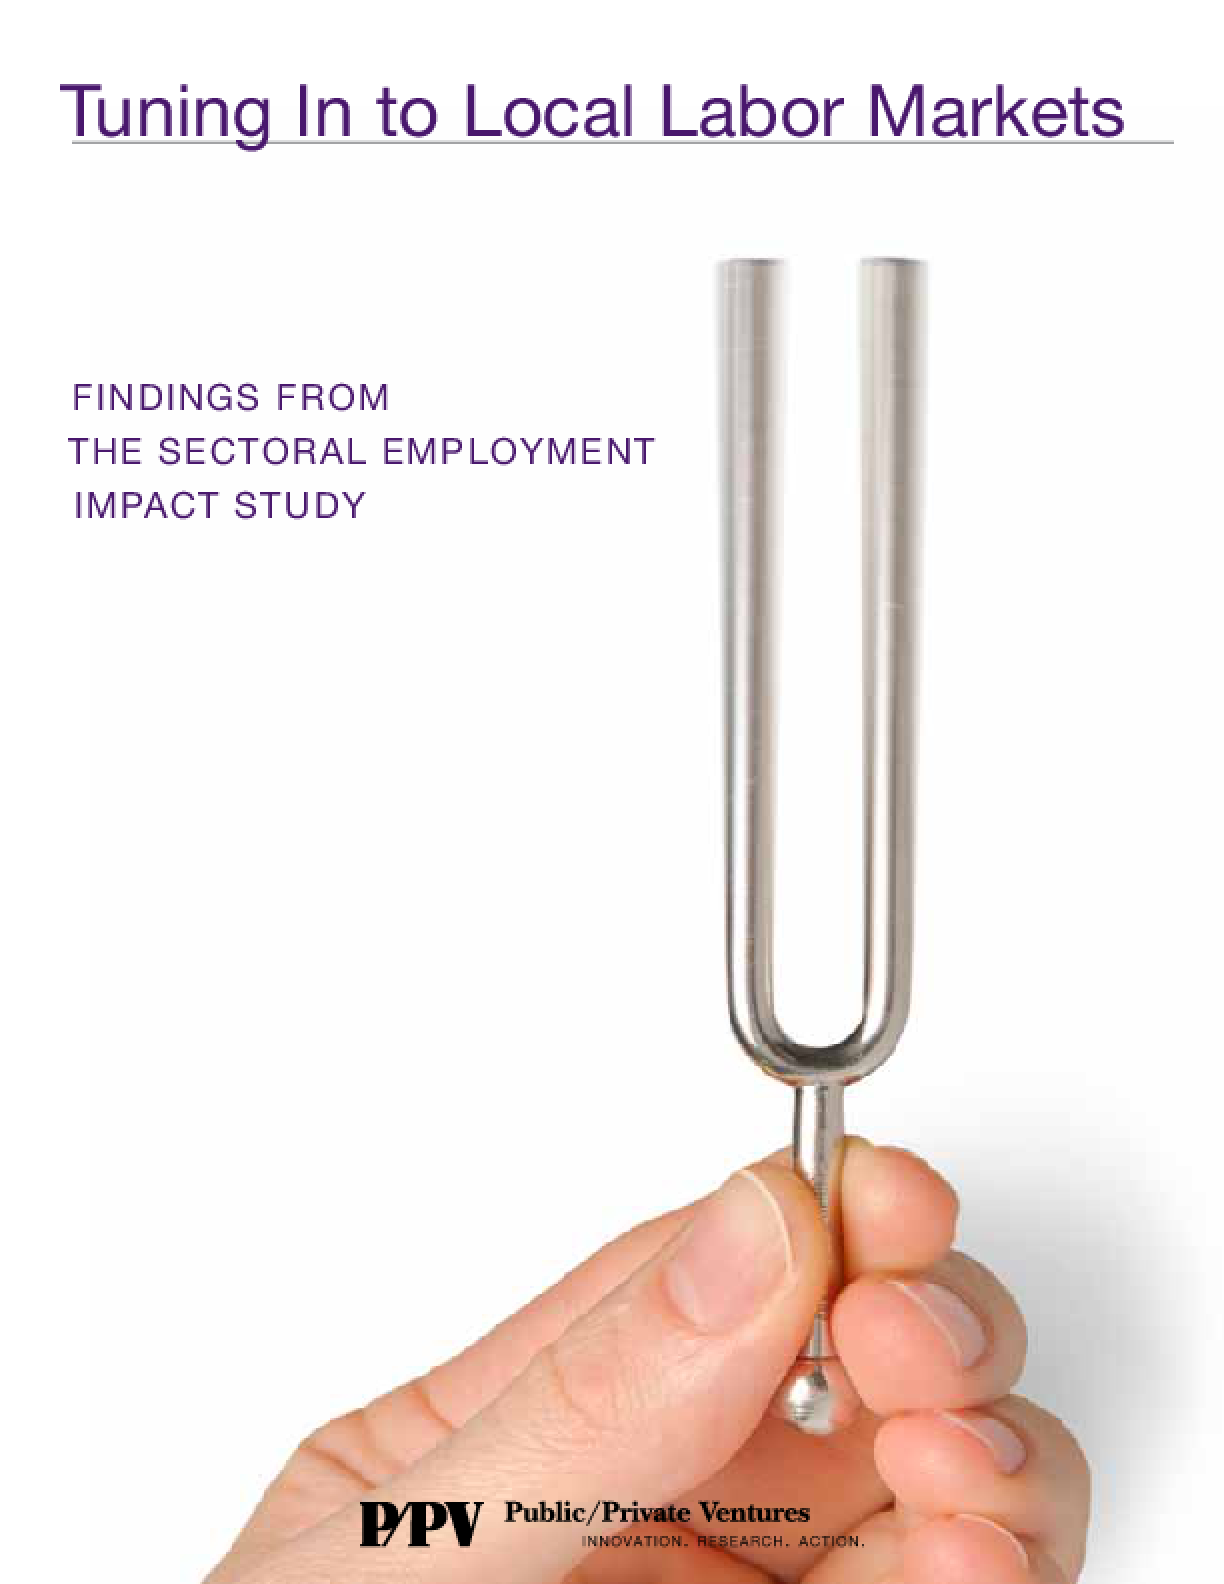 Tuning In to Local Labor Markets: Findings From the Sectoral Employment Impact Study